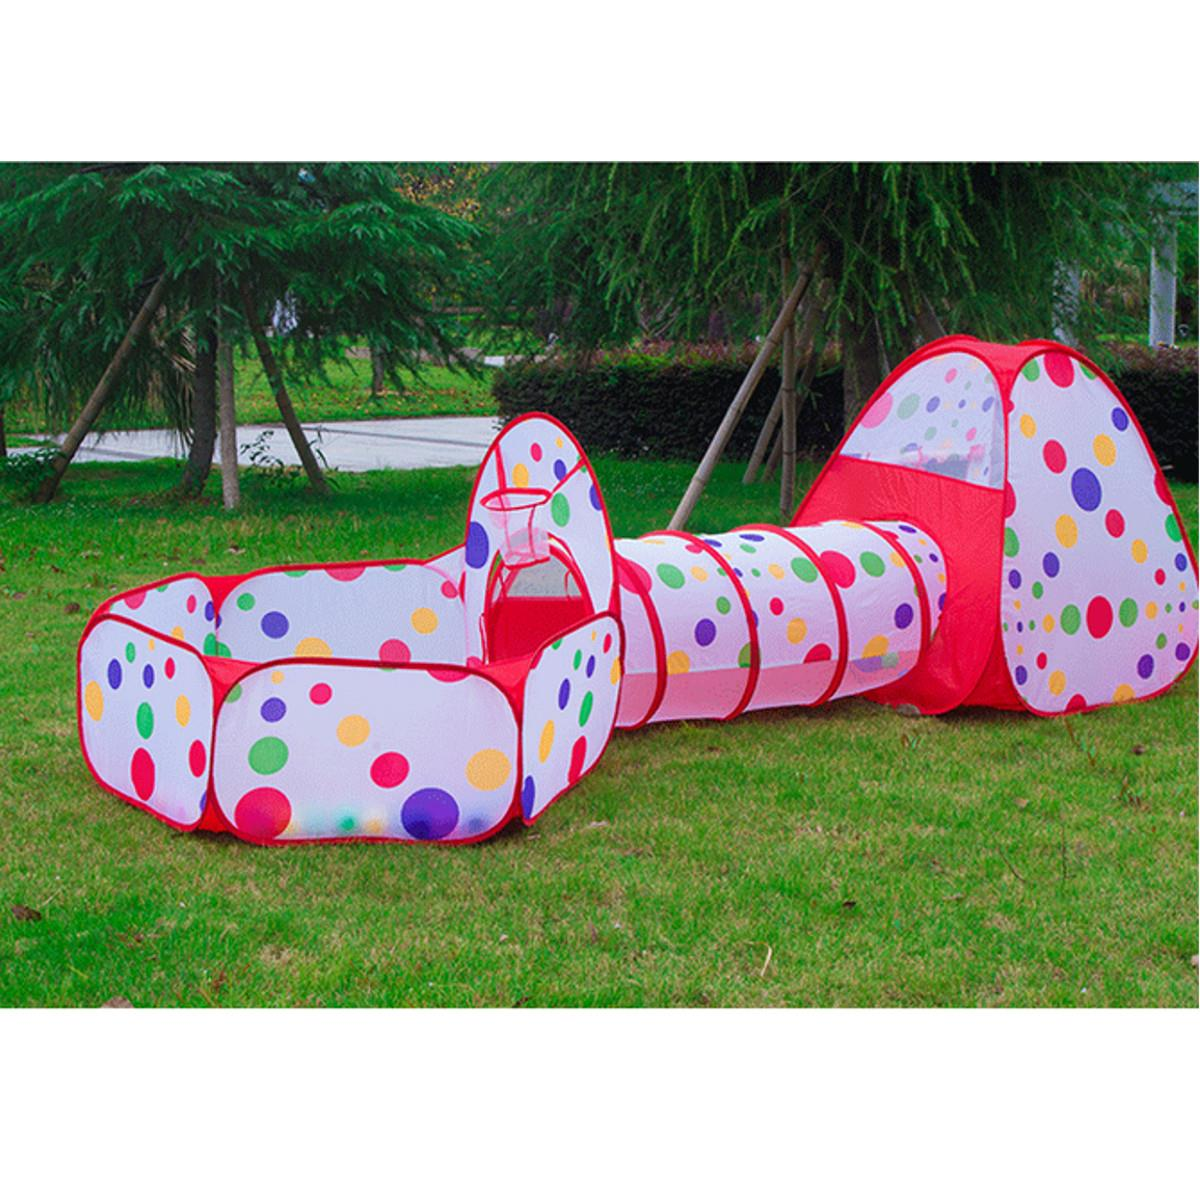 unidsset tnel pop up play tent plegable nio de los cabritos juguetes para